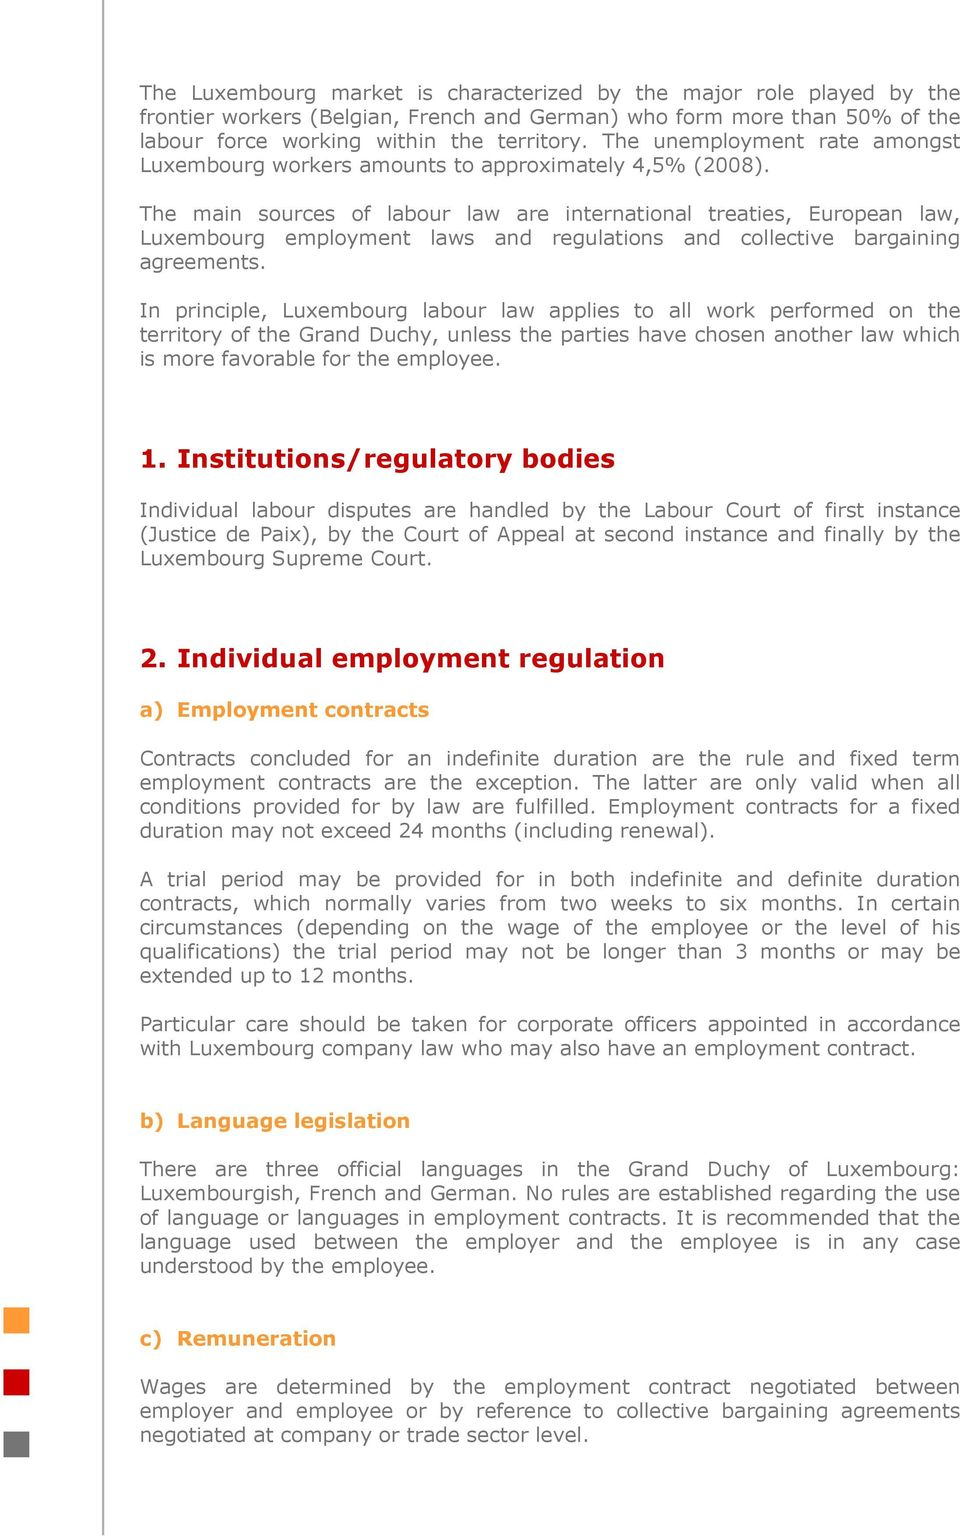 The main sources of labour law are international treaties, European law, Luxembourg employment laws and regulations and collective bargaining agreements.